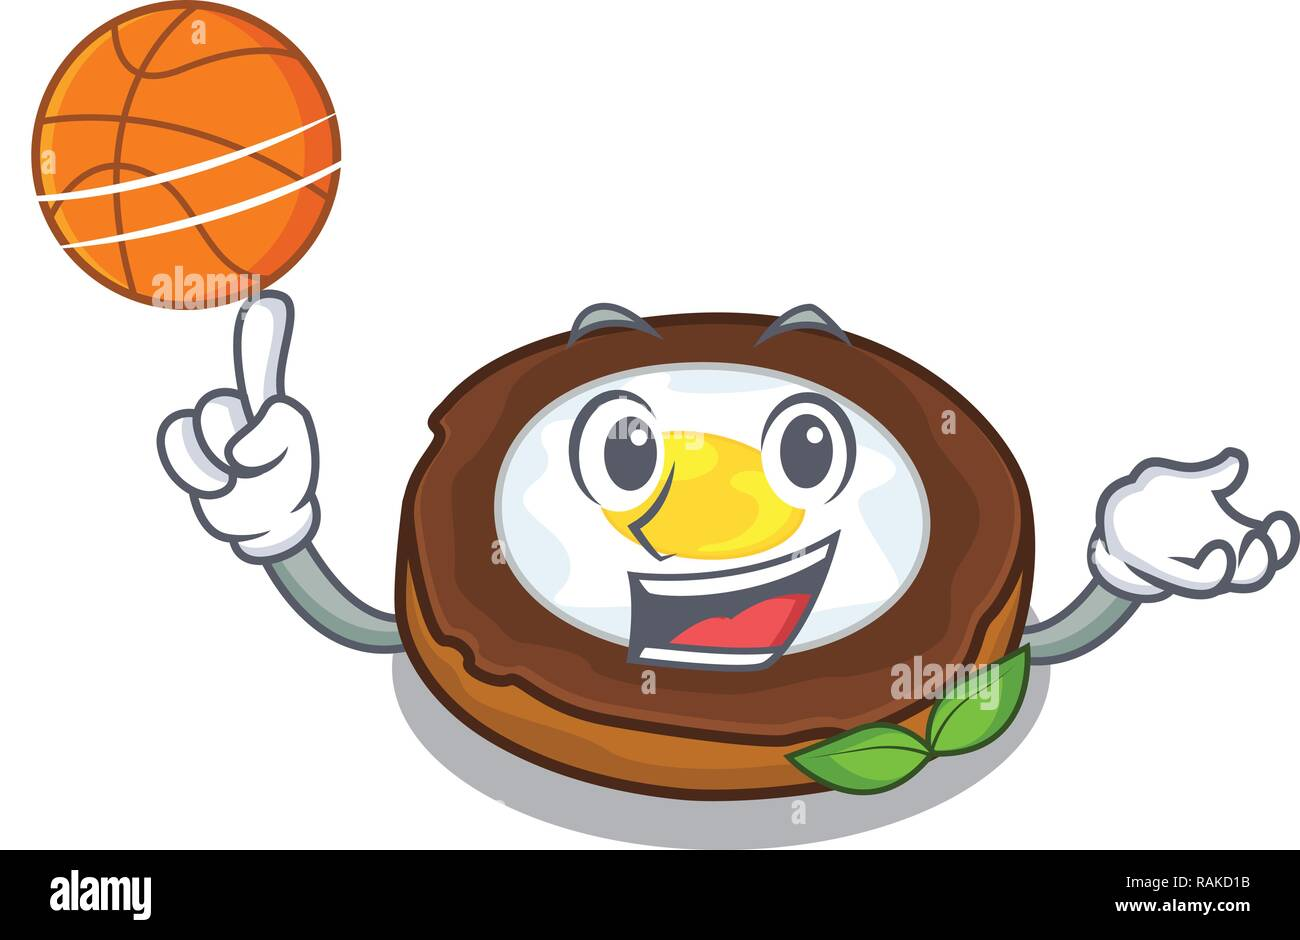 With basketball egg scotch cartoons are ready served - Stock Vector